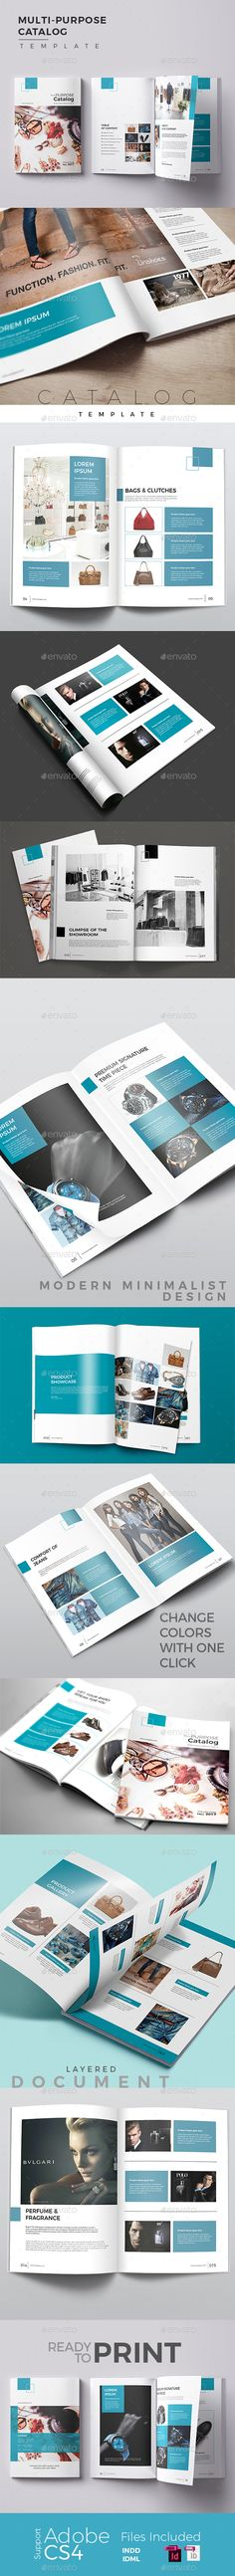 Multipurpose Catalog — InDesign INDD #photography #multipurpose • Available here → https://graphicriver.net/item/multipurpose-catalog/19452332?ref=pxcr